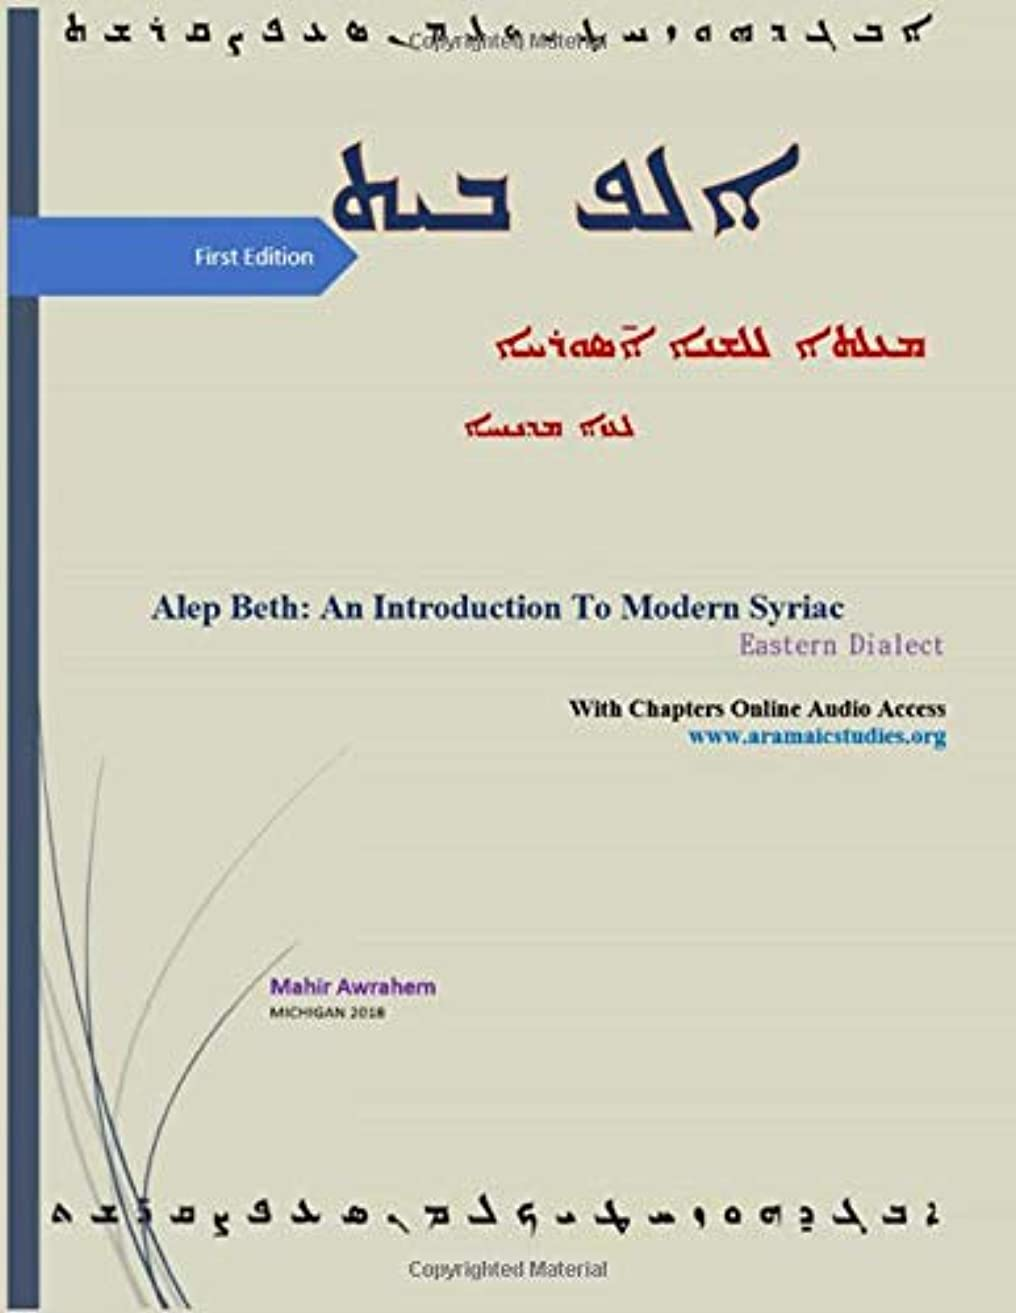 緩めるインデックス保持するALAP BETH - an Introduction to Modern Syriac: ????? ????? ???????? ???? ??????